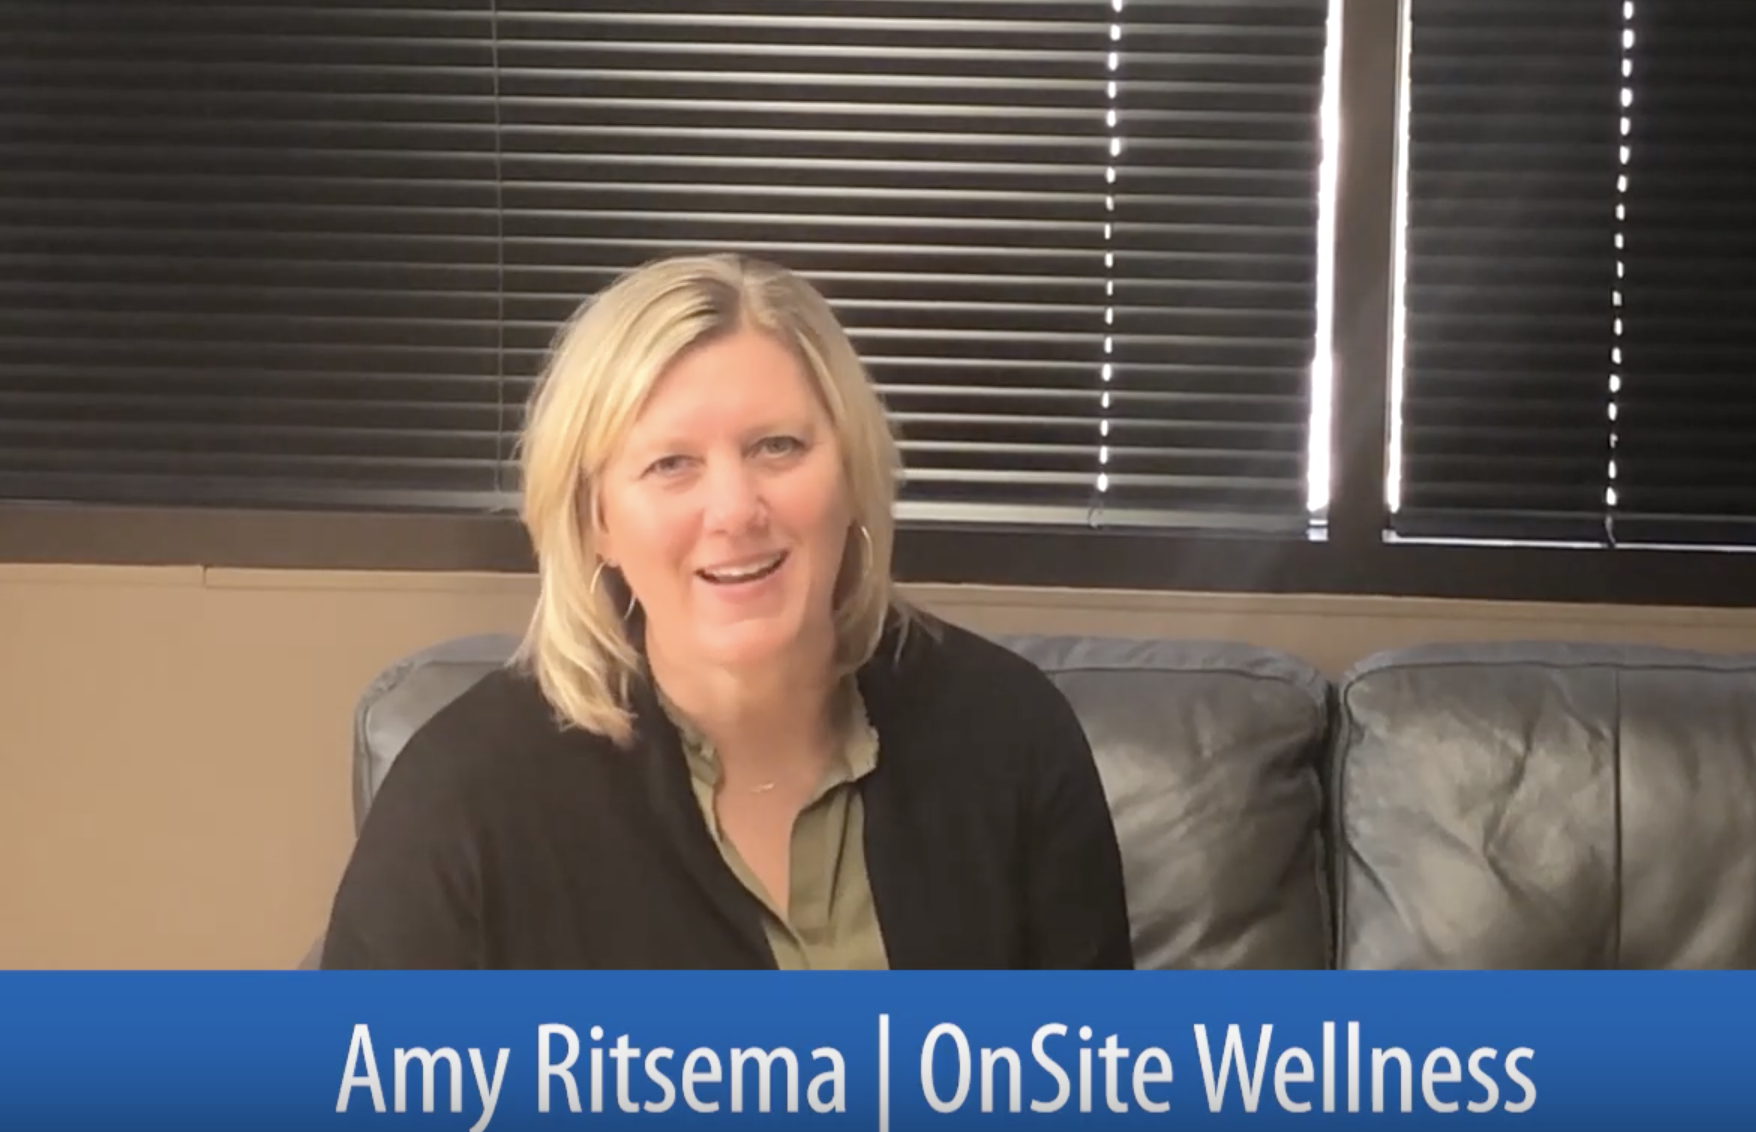 Wednesday Wisdom: Business Owners, Your Health And Wellness Matters Too